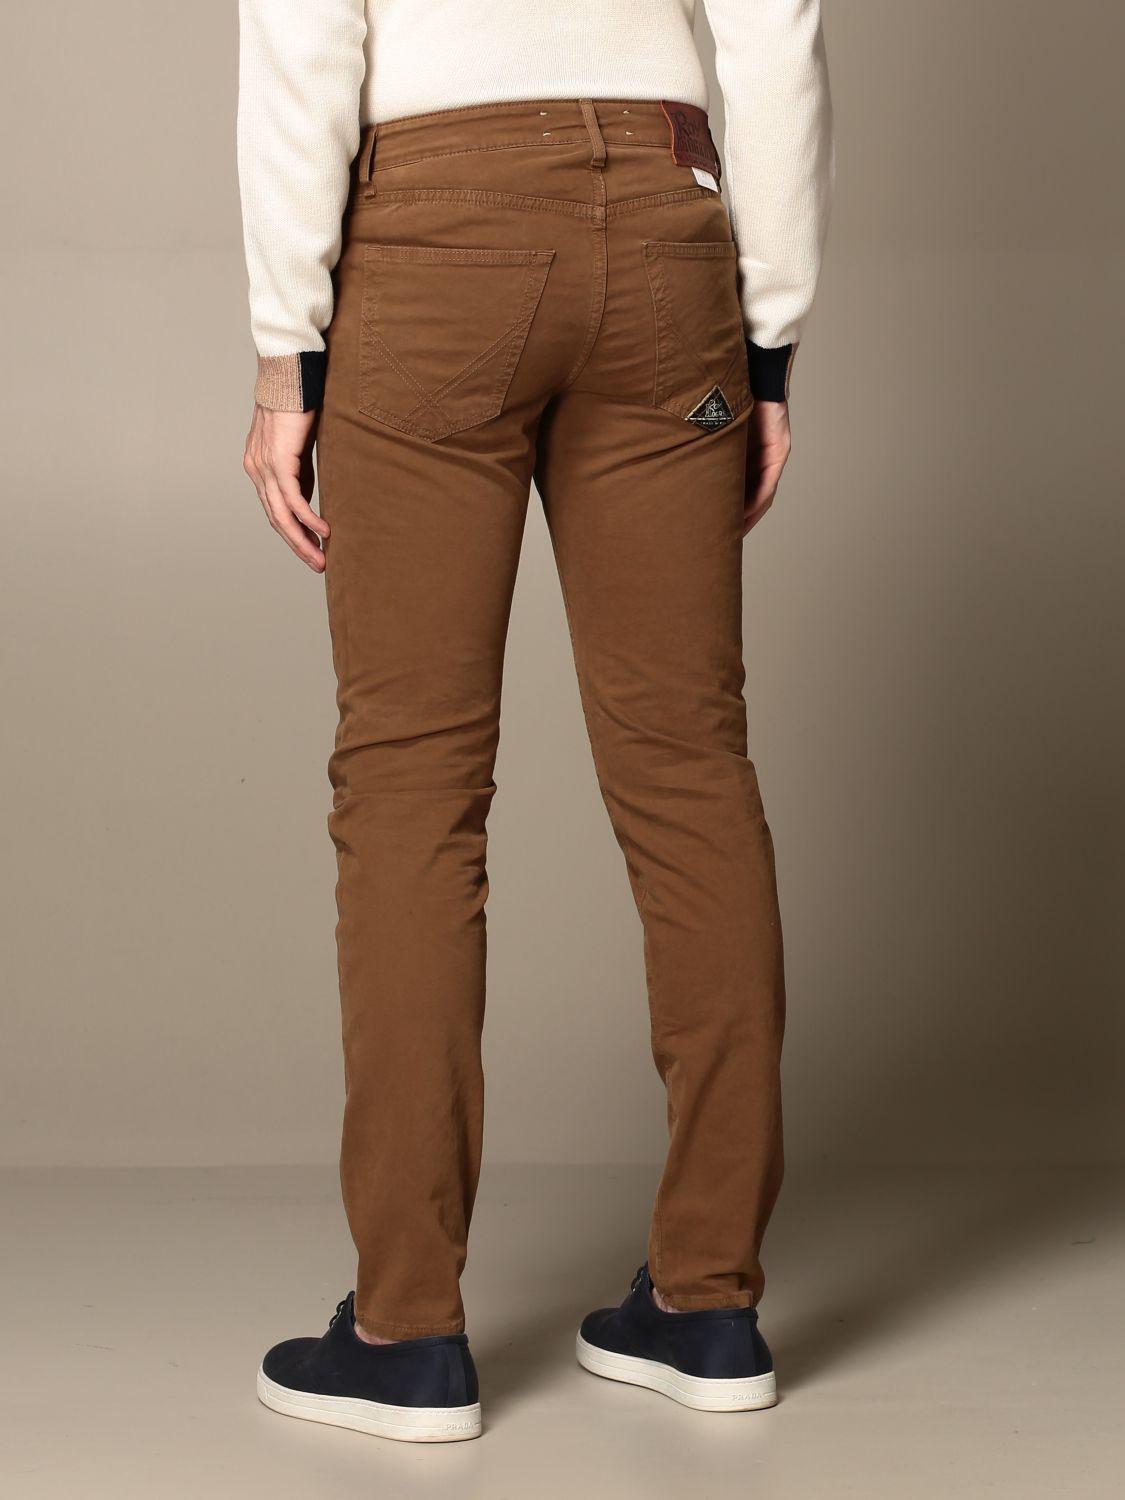 Pants Roy Rogers: Roy Rogers trousers with 5 pockets kaki 2